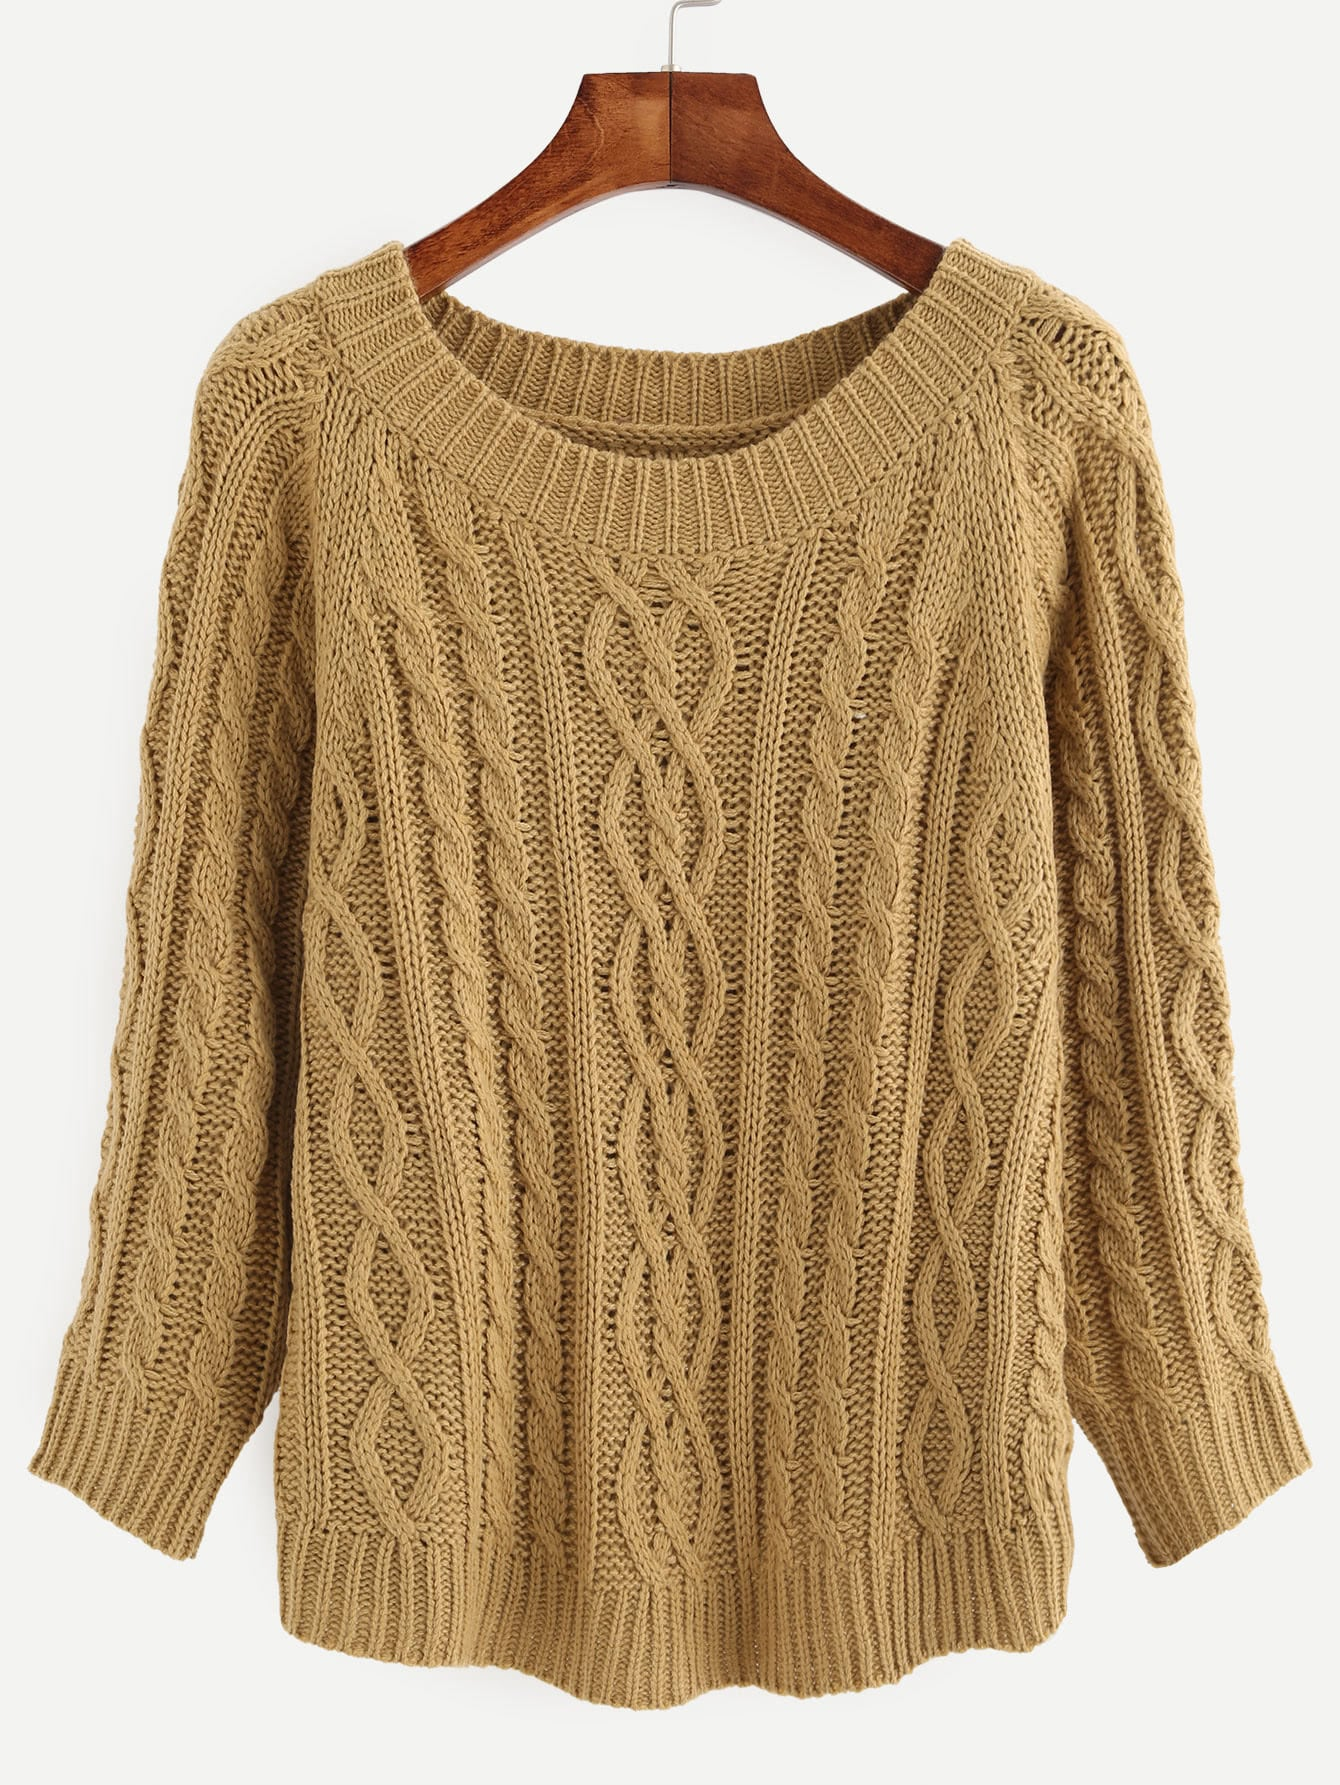 Khaki Cable-knit Round Neck Long Sleeve SweaterKhaki Cable-knit Round Neck Long Sleeve Sweater<br><br>color: Khaki<br>size: one-size